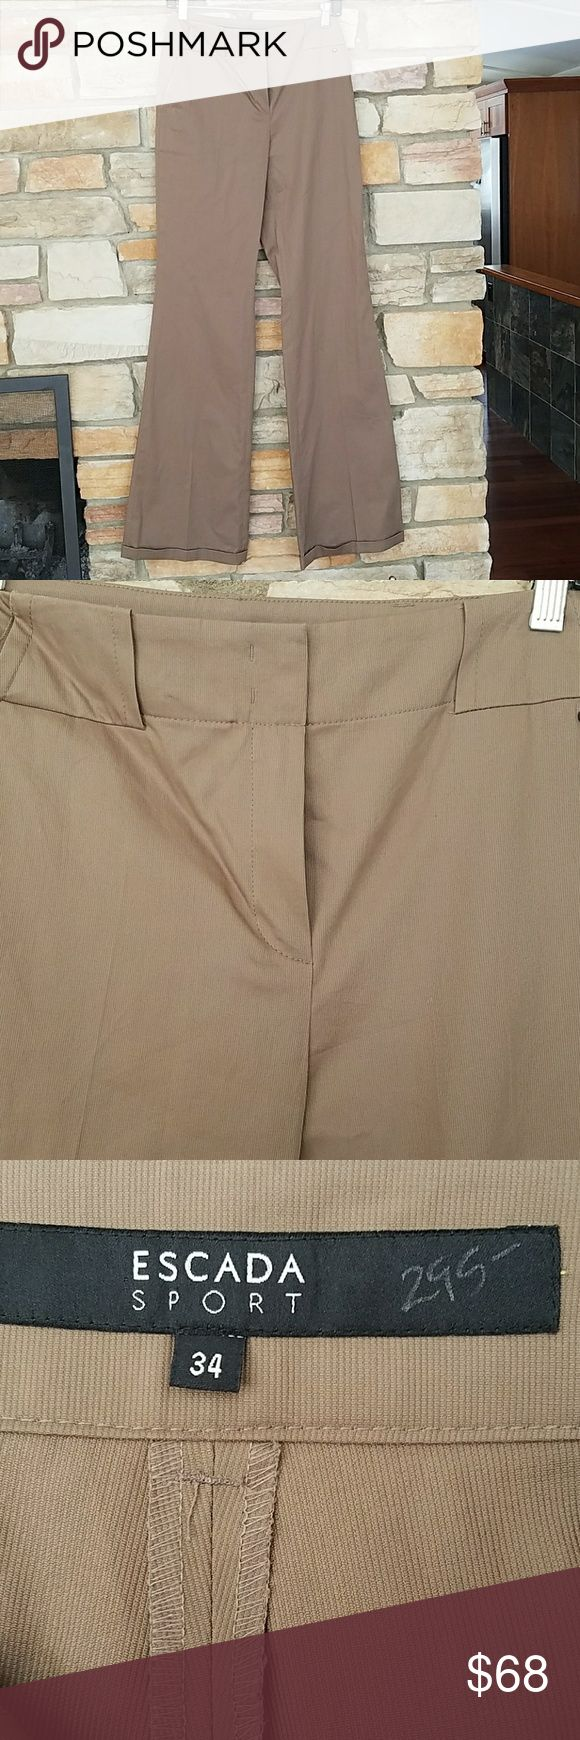 """Escada sport boot leg pants LONG NWOT These are brand new, cleaning out closet! Perfect for casual or for work. Boot cut, light weight. 28""""W 34""""inseam 9.5"""" Escada Pants Boot Cut & Flare"""